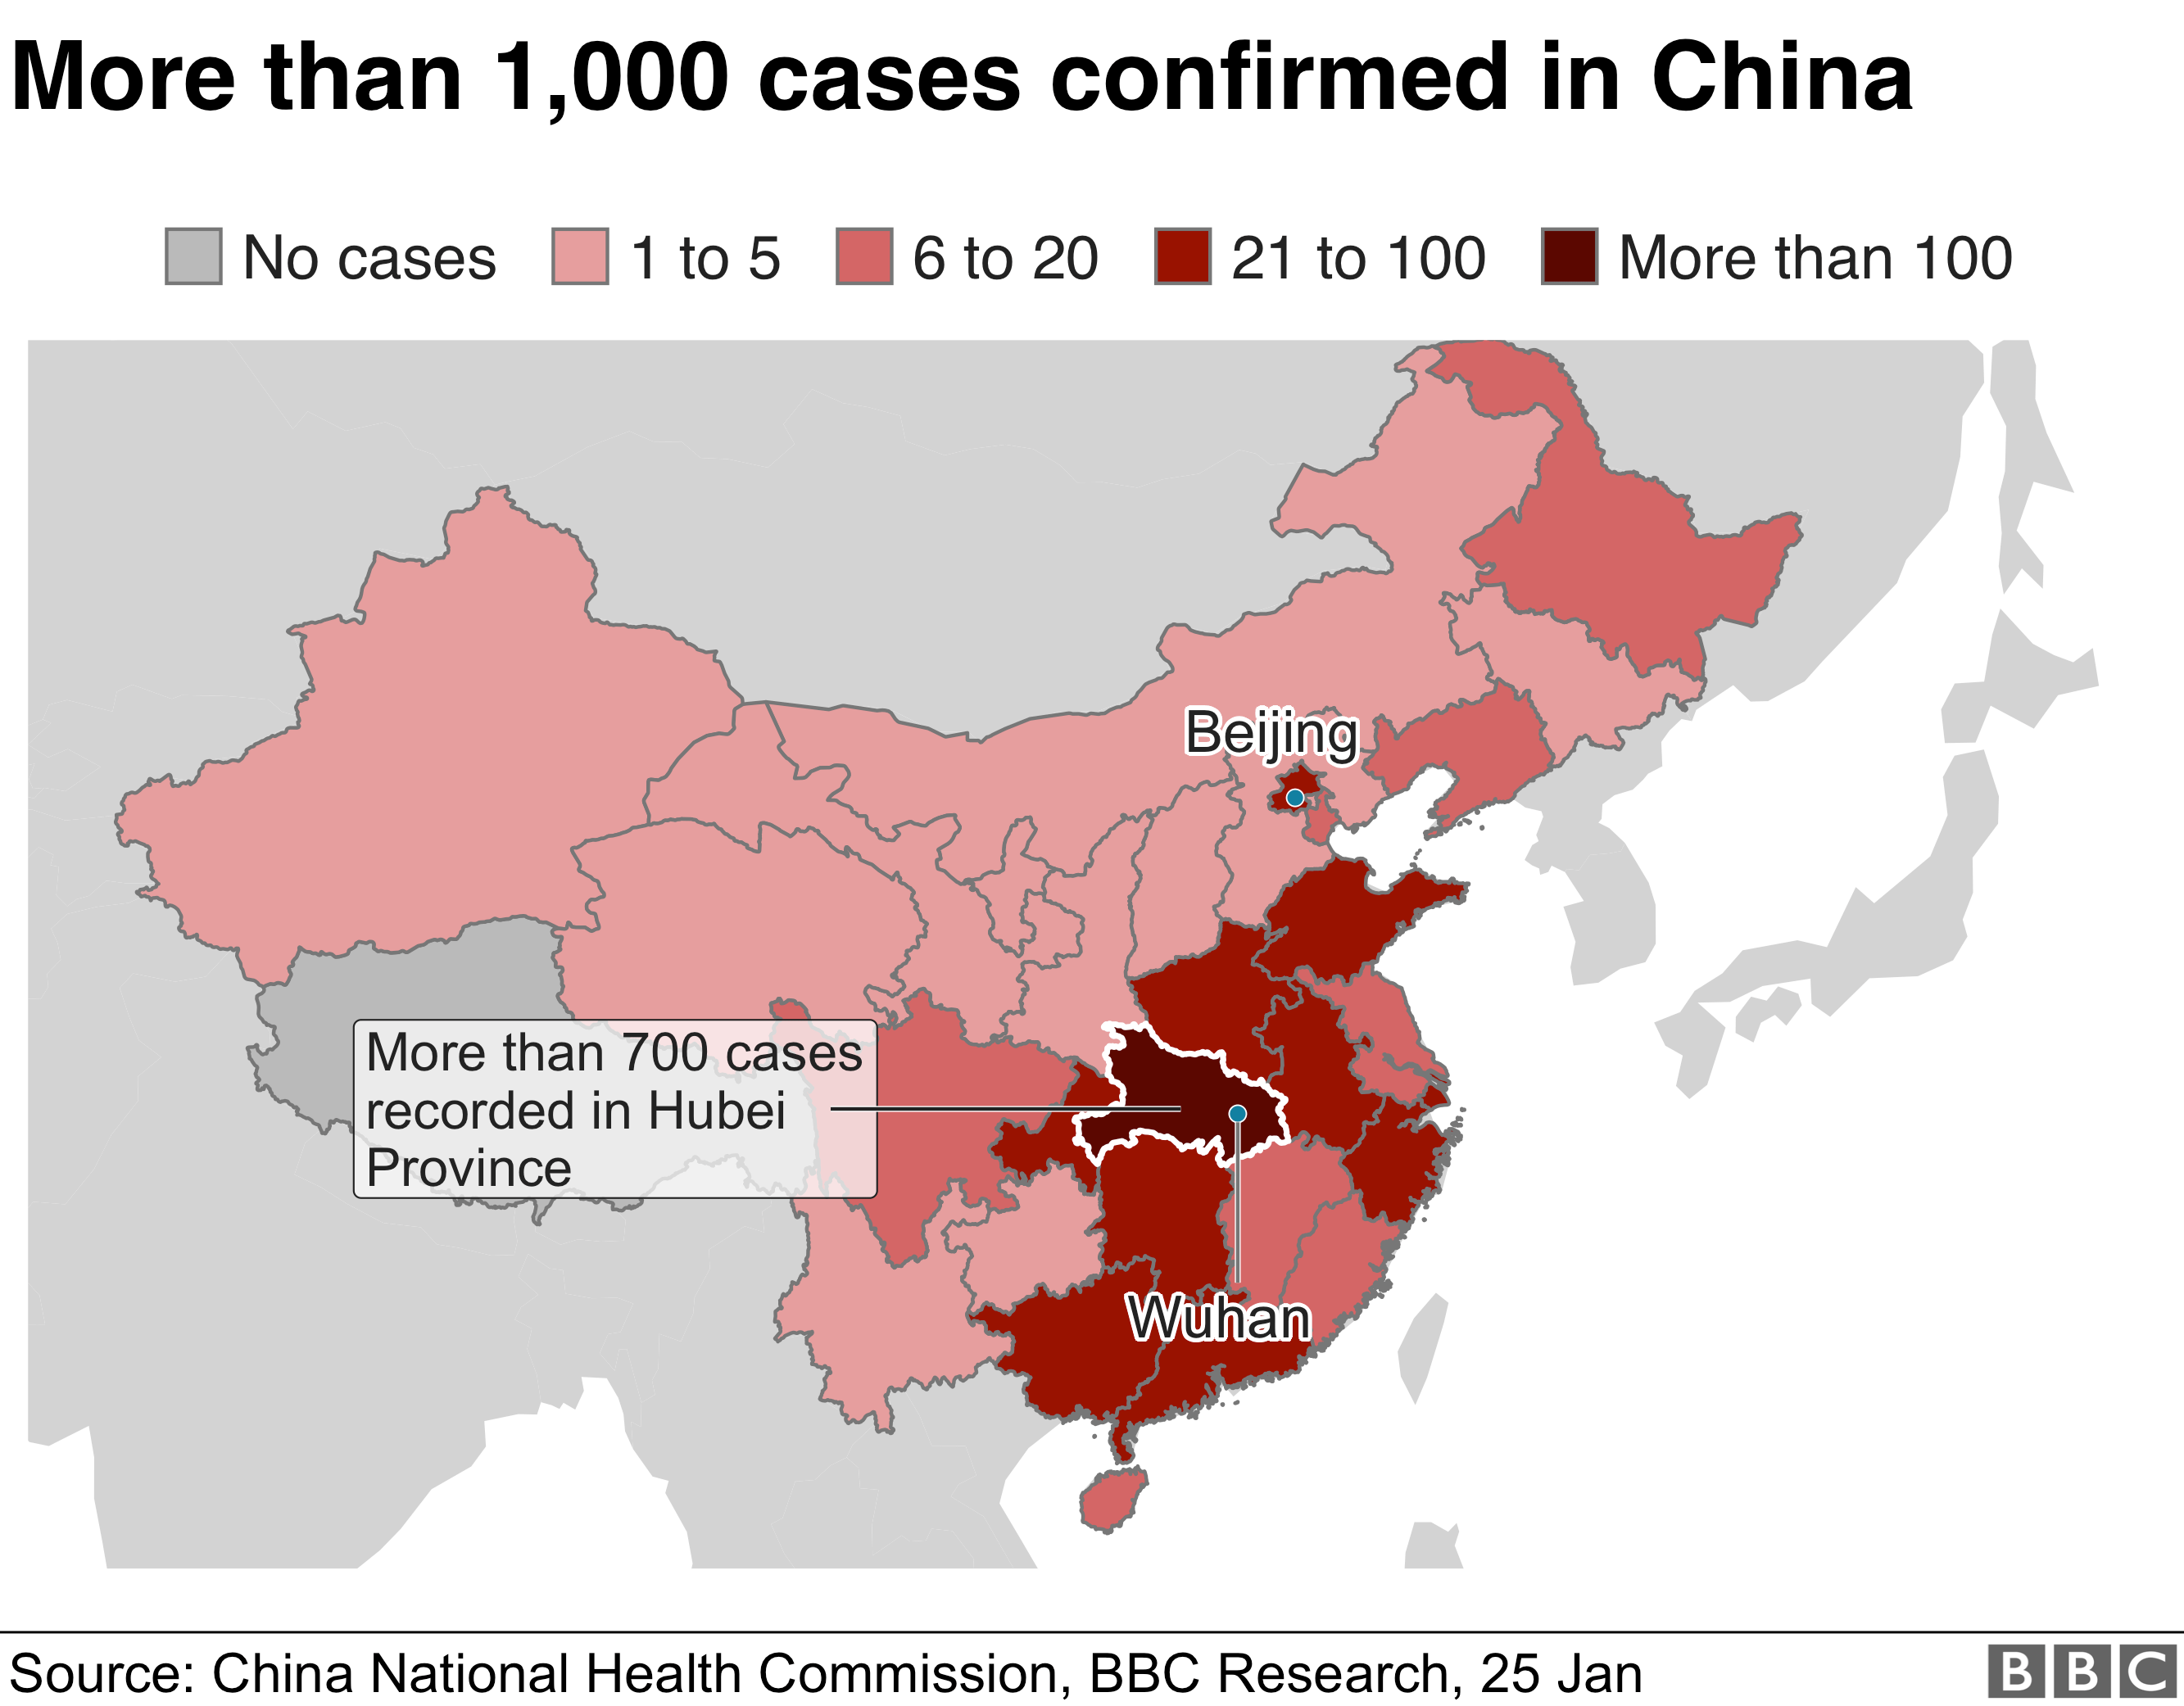 China coronavirus: Death toll rises as disease spreads - BBC News